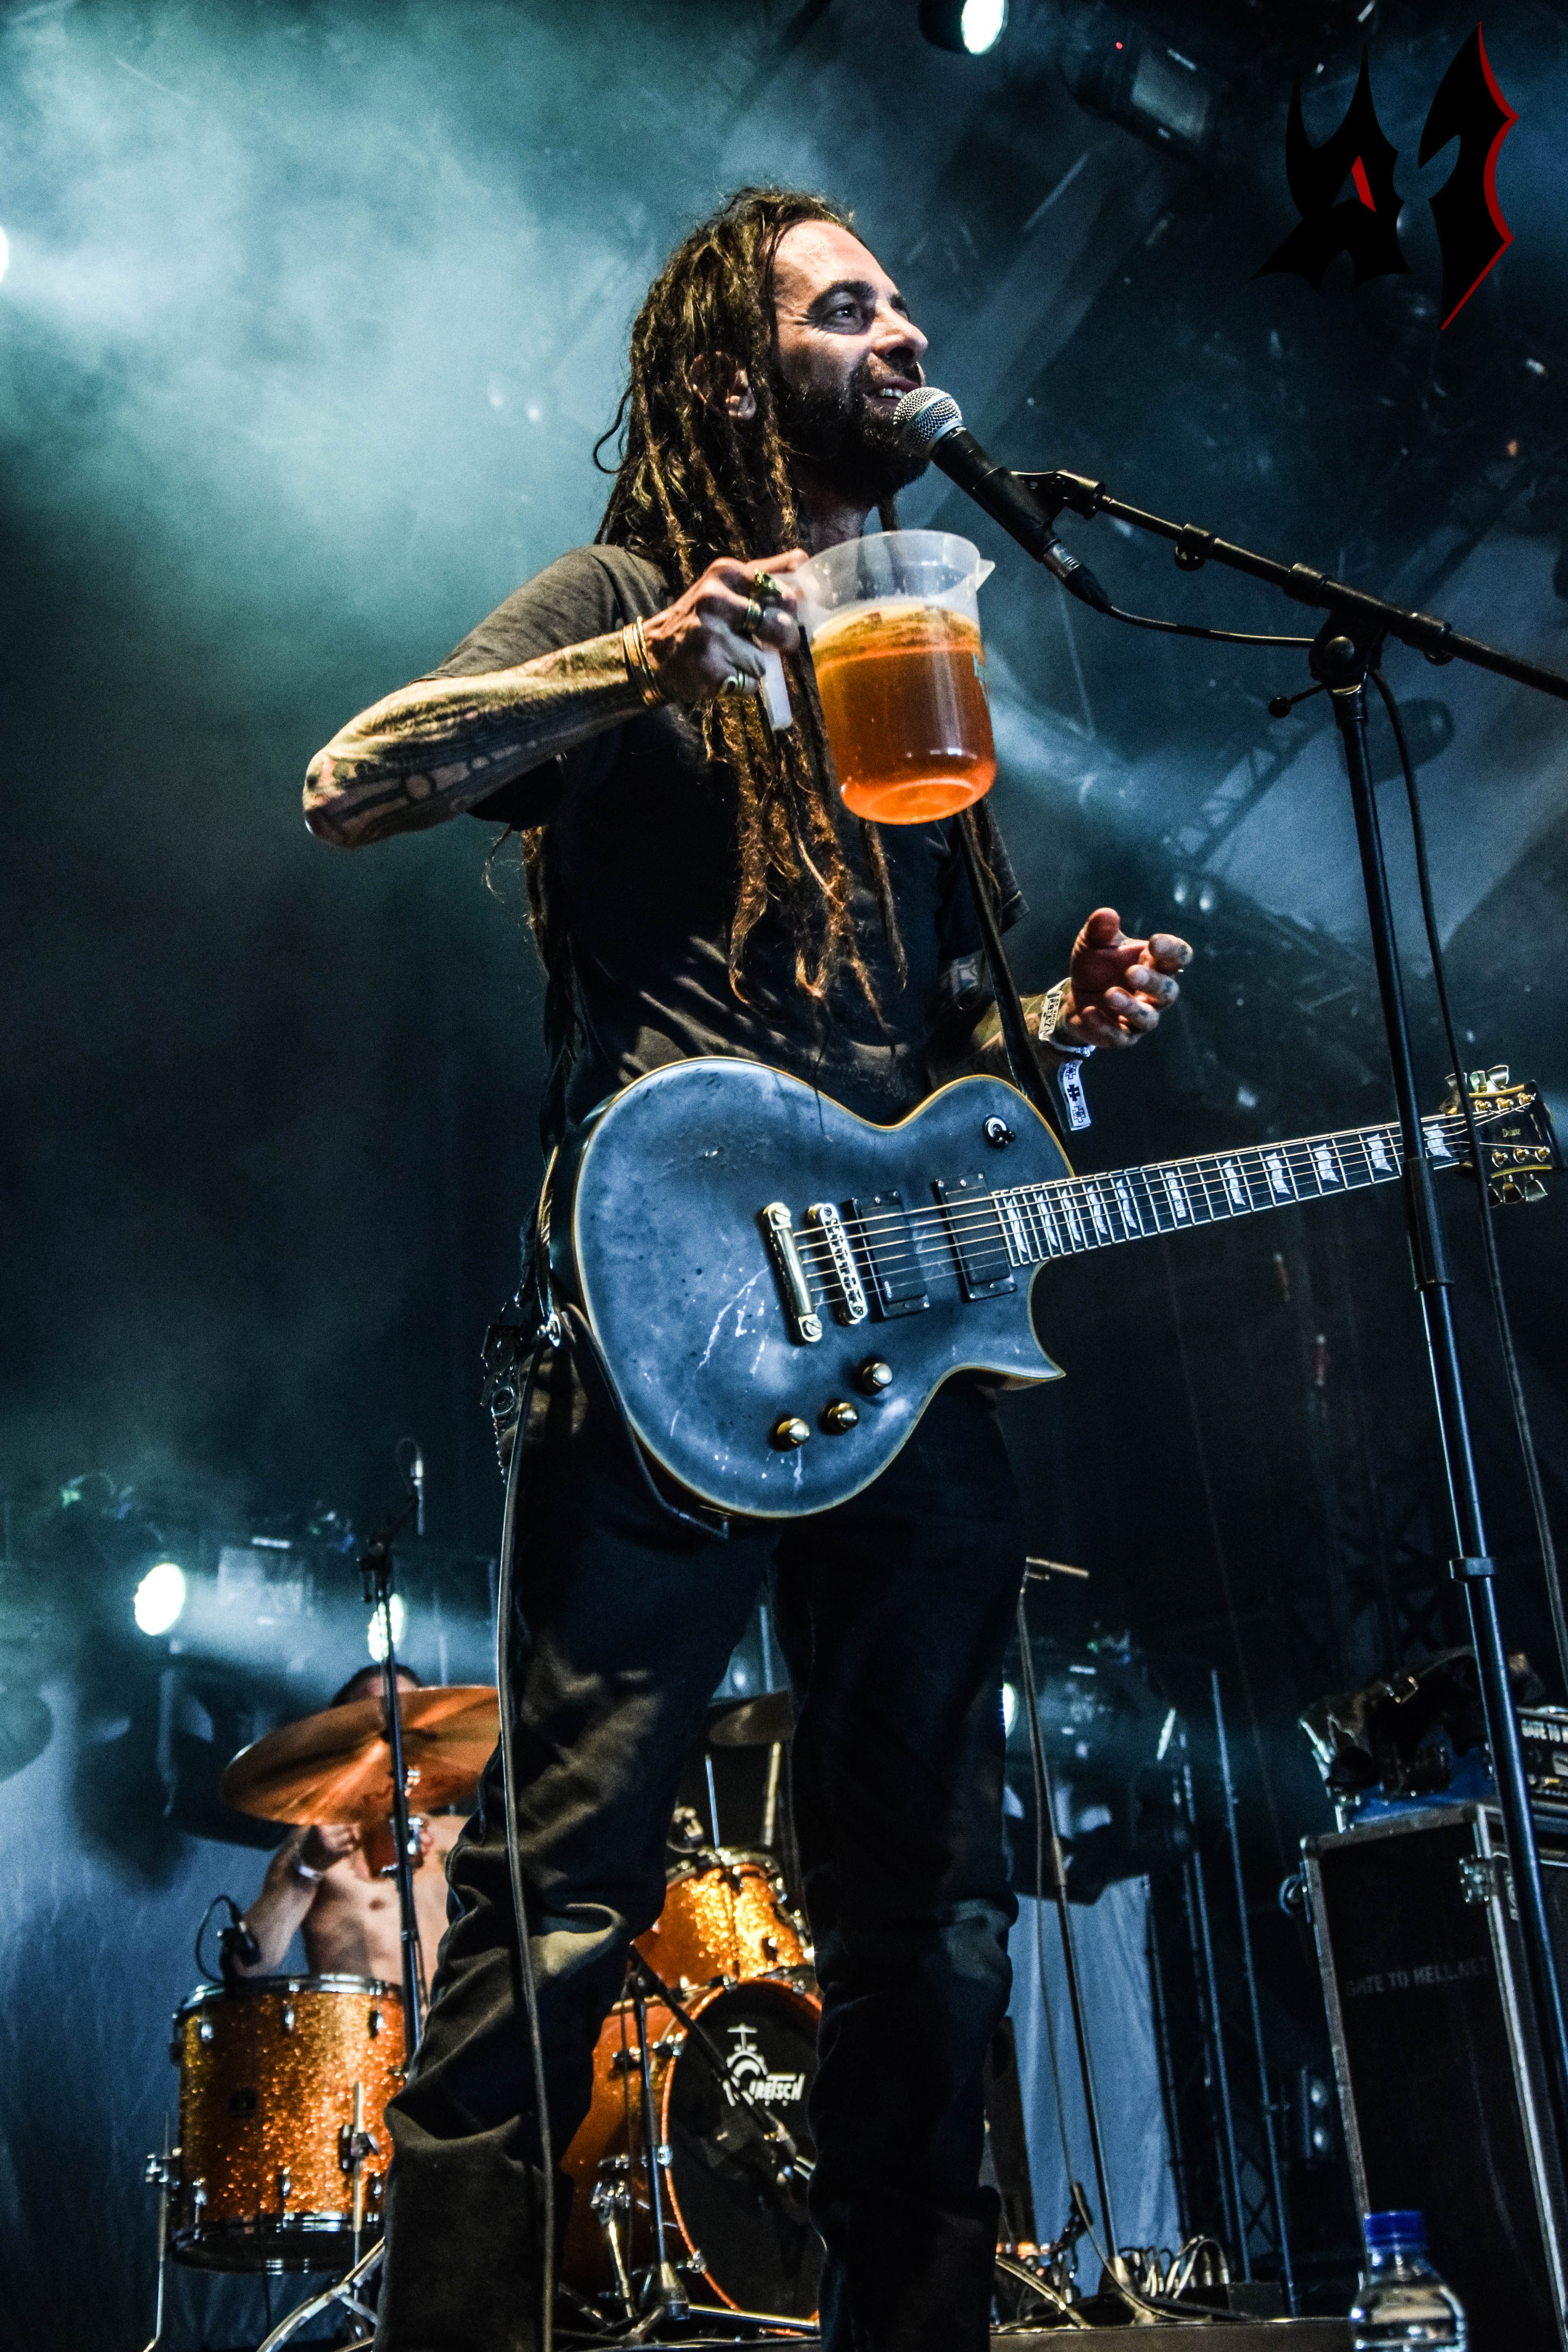 Hellfest - Day 1 - Dopethrone 11